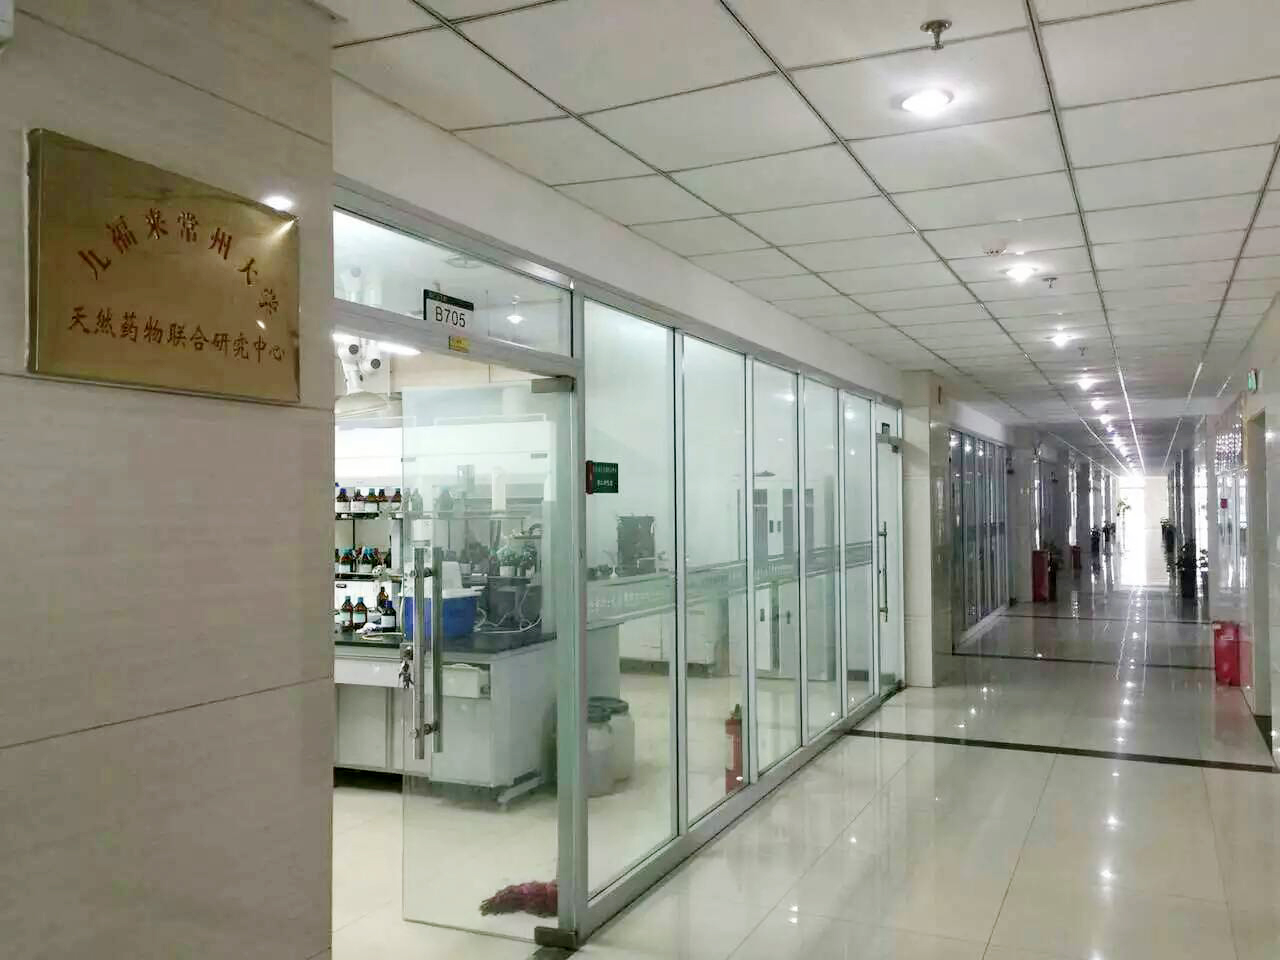 Changzhou University Pharmaceutical and Life Sciences